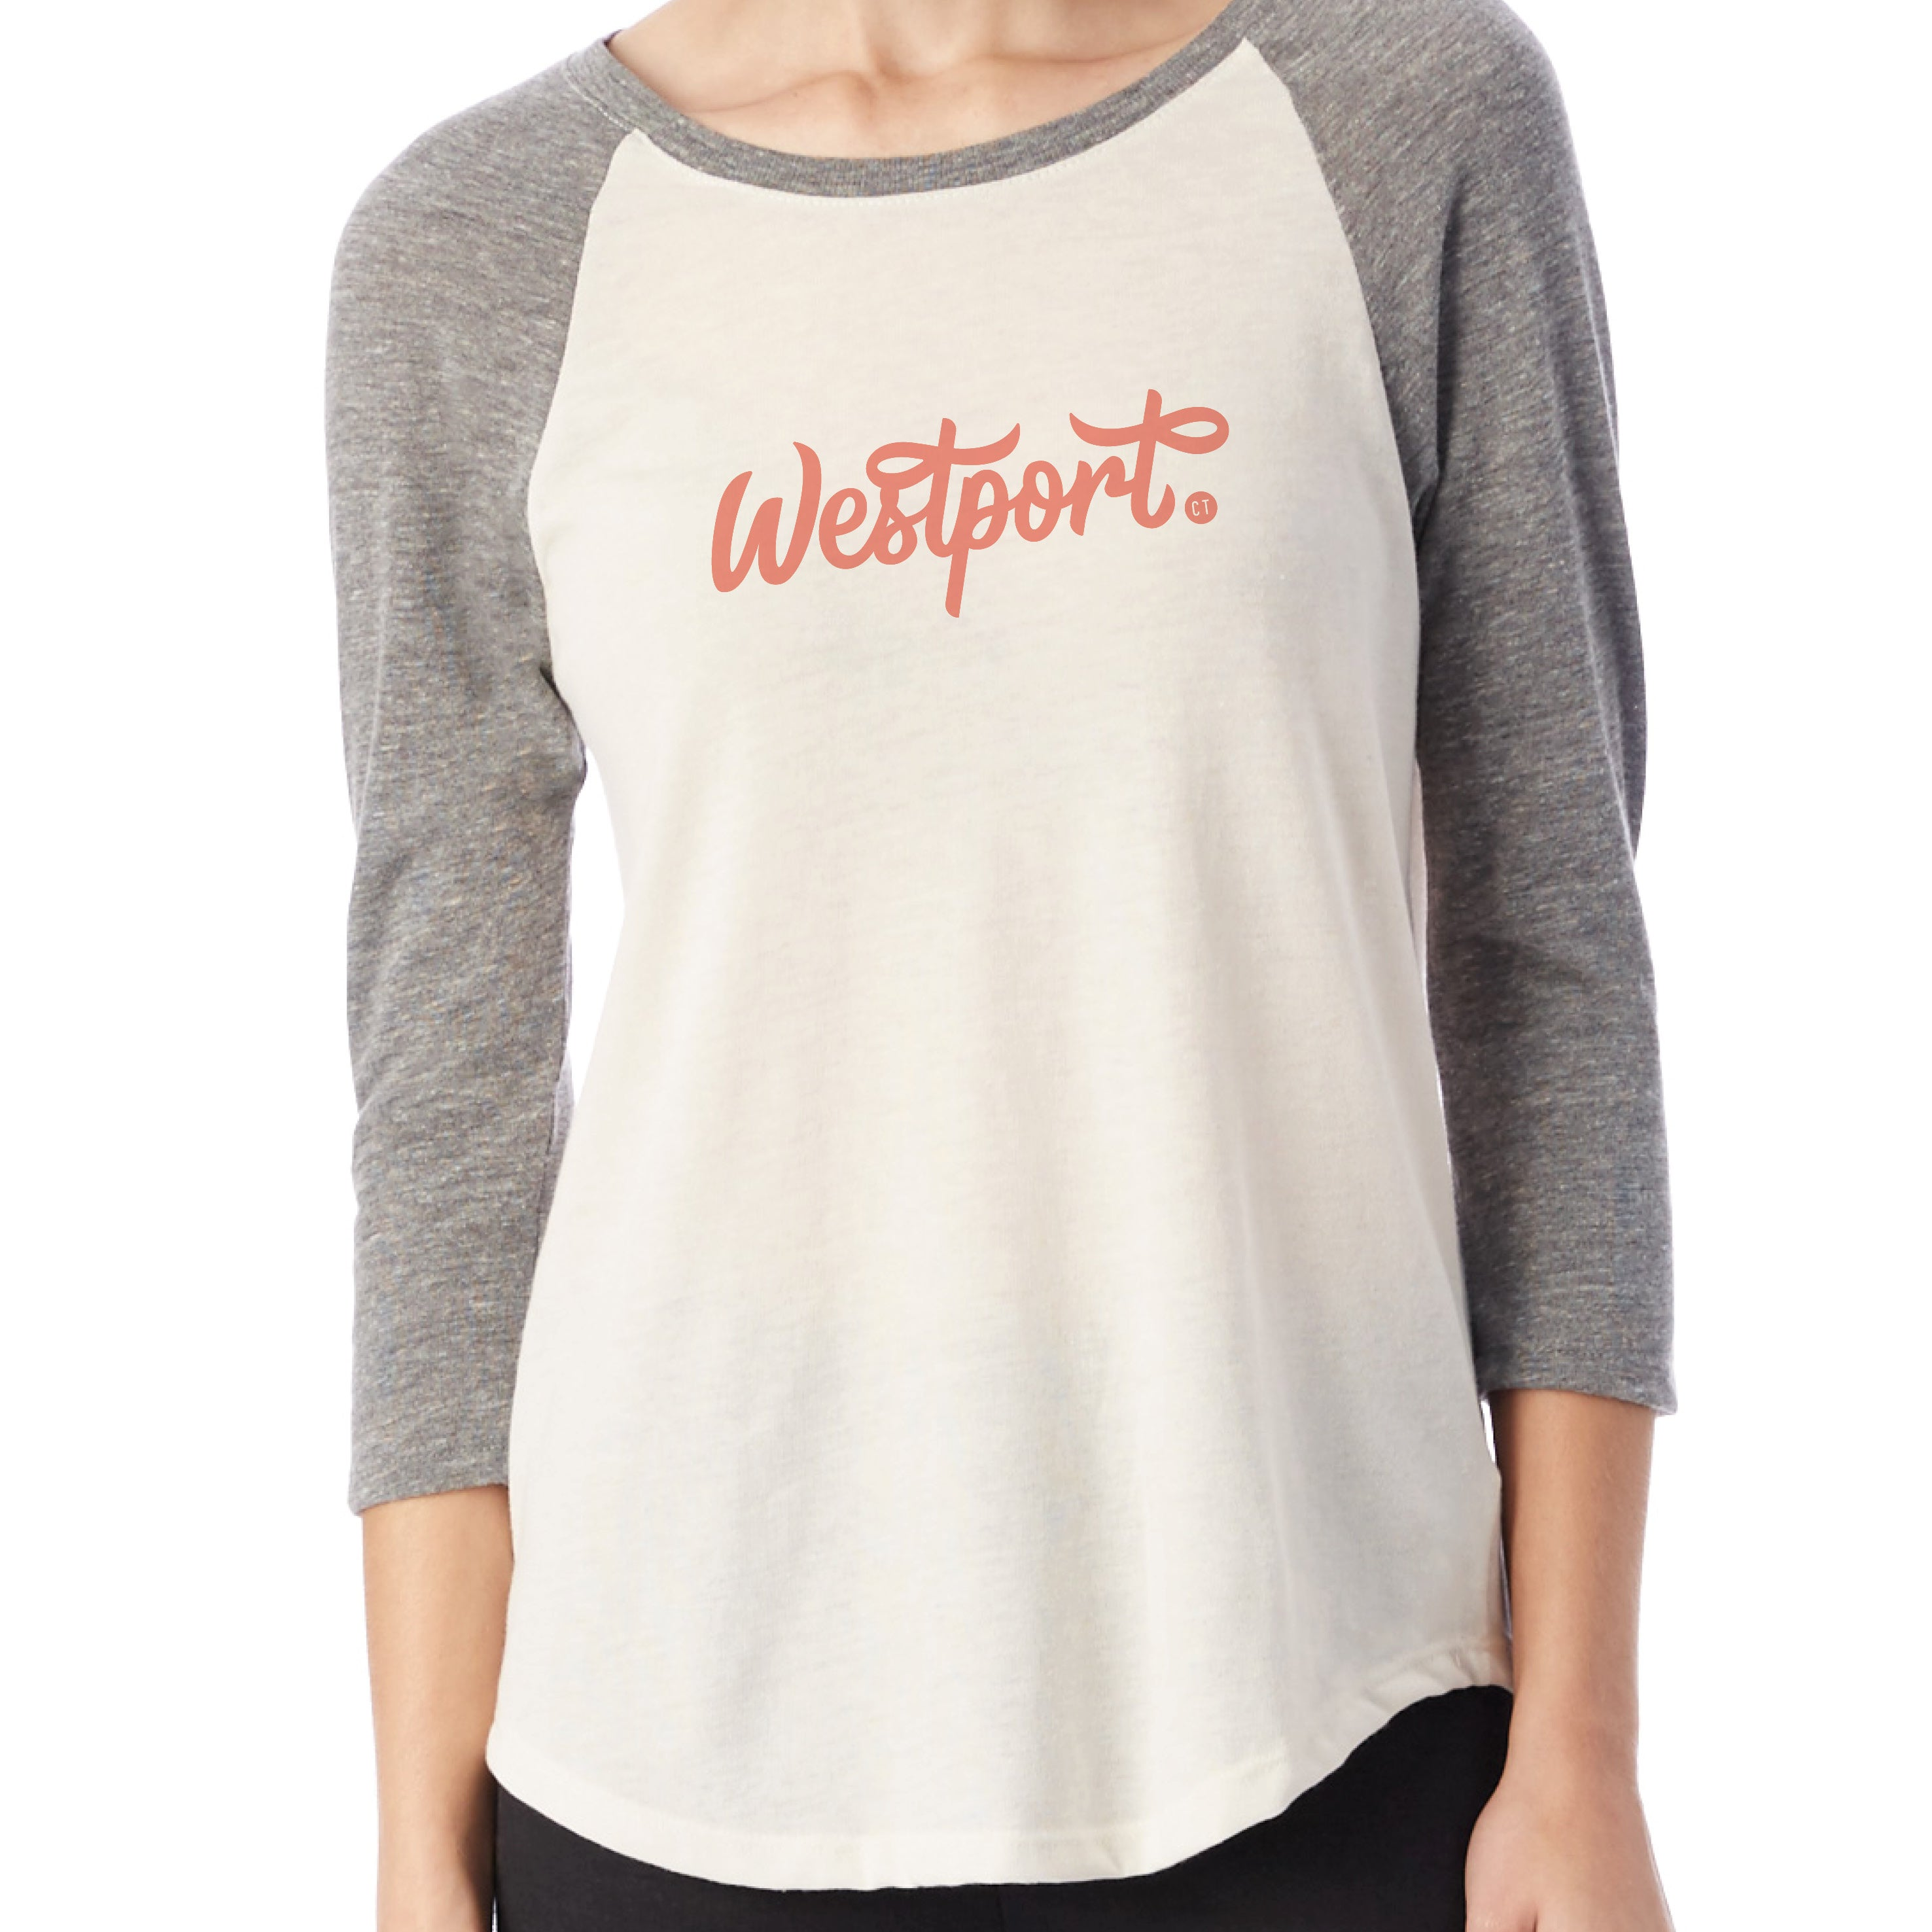 Westport T-shirt by Townee - Townee Baseball Tee (front)